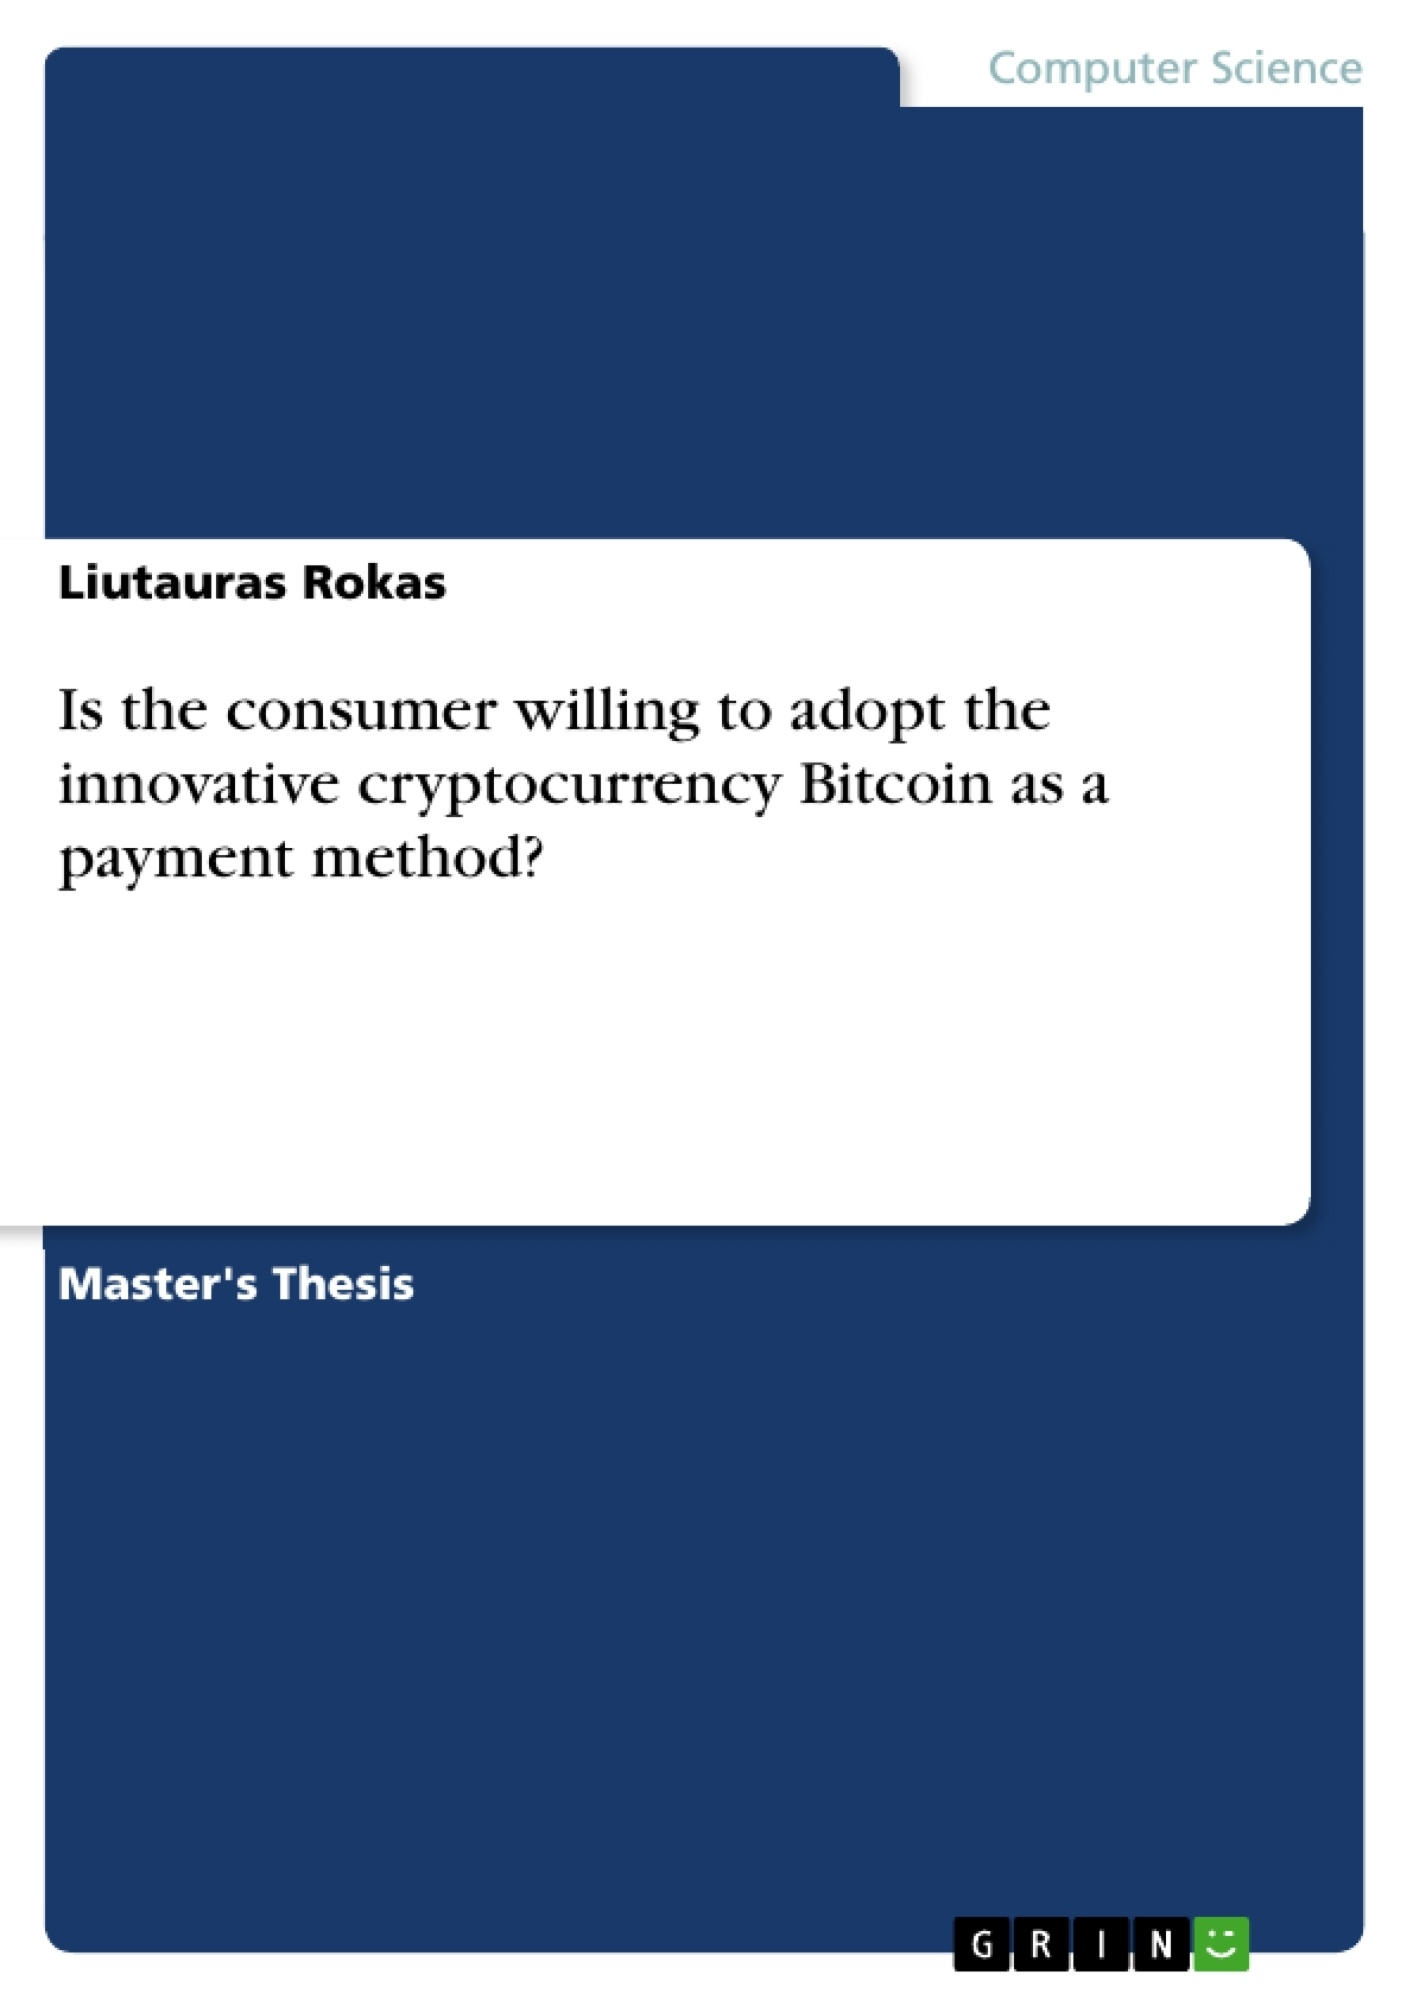 Title: Is the consumer willing to adopt the innovative cryptocurrency Bitcoin as a payment method?